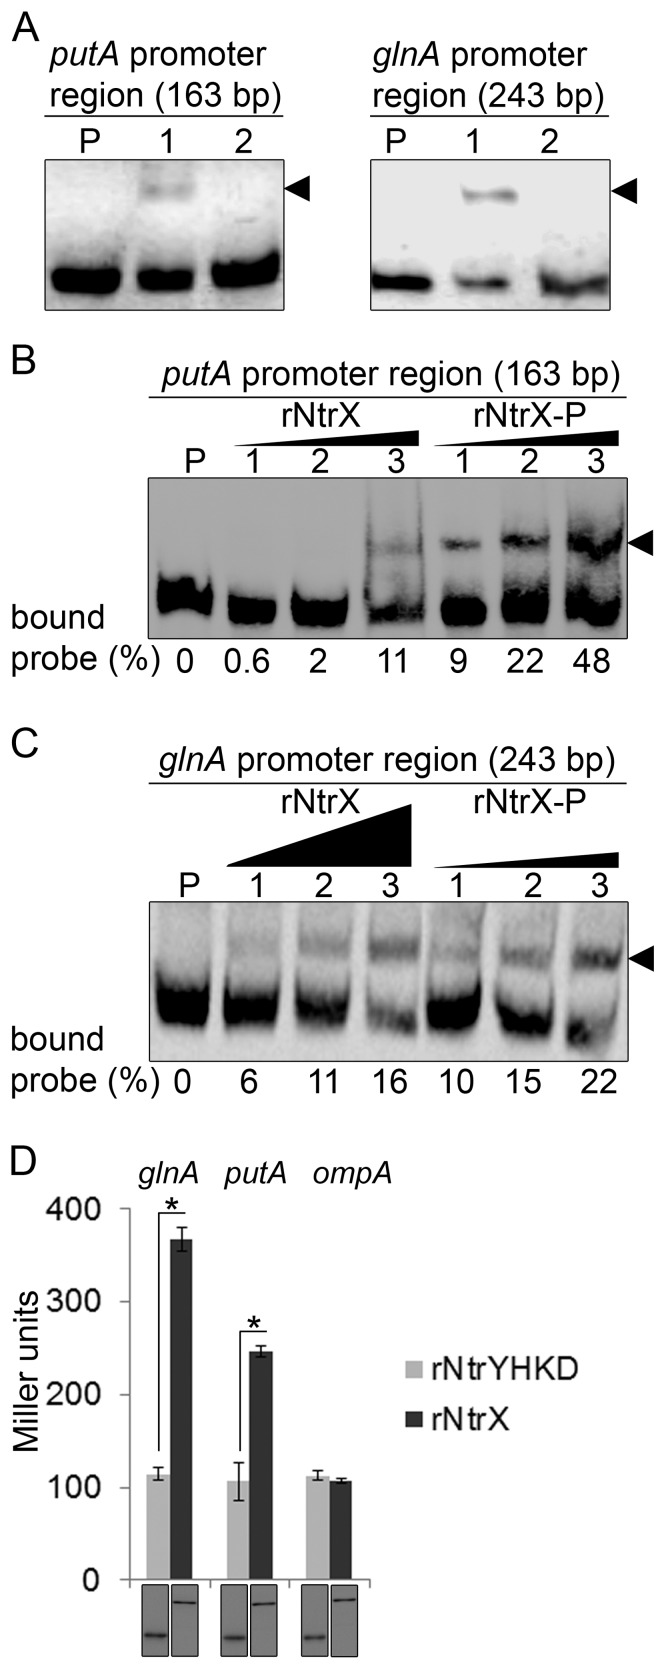 NtrX regulates putA and glnA expression. (A) EMSA for rNtrX binding to the promoter regions of putA (left) and glnA (right). The length (bp) of the probe is shown above each panel. For each panel, biotinylated DNA probe (2 nM) was incubated alone (P), with rNtrX (10 nM, lane 1), or with rNtrX in the presence of 50-fold excess of the corresponding unlabeled DNA competitor (lane 2). Shifted bands are indicated by arrowheads. (B) EMSA for dose-dependent binding of rNtrX and rNtrX-P to the putA promoter. Biotinylated DNA probe (2 nM) was incubated alone (P) or with rNtrX or rNtrX-P at different concentrations (lanes 1 to 3: 2, 4, and 8 nM, respectively). Shifted bands are indicated by an arrowhead. Black triangles show proportions of protein amounts. The numbers below the panel indicate the percentage of bound probe with respect to the total of each lane. (C) EMSA for dose-dependent binding of rNtrX and rNtrX-P to the glnA promoter. Biotinylated DNA probe (2 nM) was incubated alone (P) or with rNtrX at different concentrations (lanes 1 to 3: 6, 20, and 60 nM, respectively) or with rNtrX-P at different concentrations (lanes 1 to 3: 1.5, 5, and 15 nM, respectively). Shifted bands are indicated by an arrowhead. Black triangles show proportions of protein amounts. The numbers below the panel indicate the percentage of bound probe with respect to the total of each lane. (D) NtrX transactivates glnA and putA promoter- lacZ fusions in E. coli . E. coli strains containing pET-33b(+) encoding rNtrX and rNtrYHKD were transformed with the glnA -, putA -, or ompA-lacZ fusions containing the promoter regions of glnA (243 bp), putA (163 bp), or ompA (368 bp), respectively. After induction of rNtrX or rNtrYHKD with IPTG, β-galactosidase activity was measured. Top, β-galactosidase activity (Miller units). Data indicate the means ± standard deviations from three independent experiments performed in triplicate. *, significantly different ( P